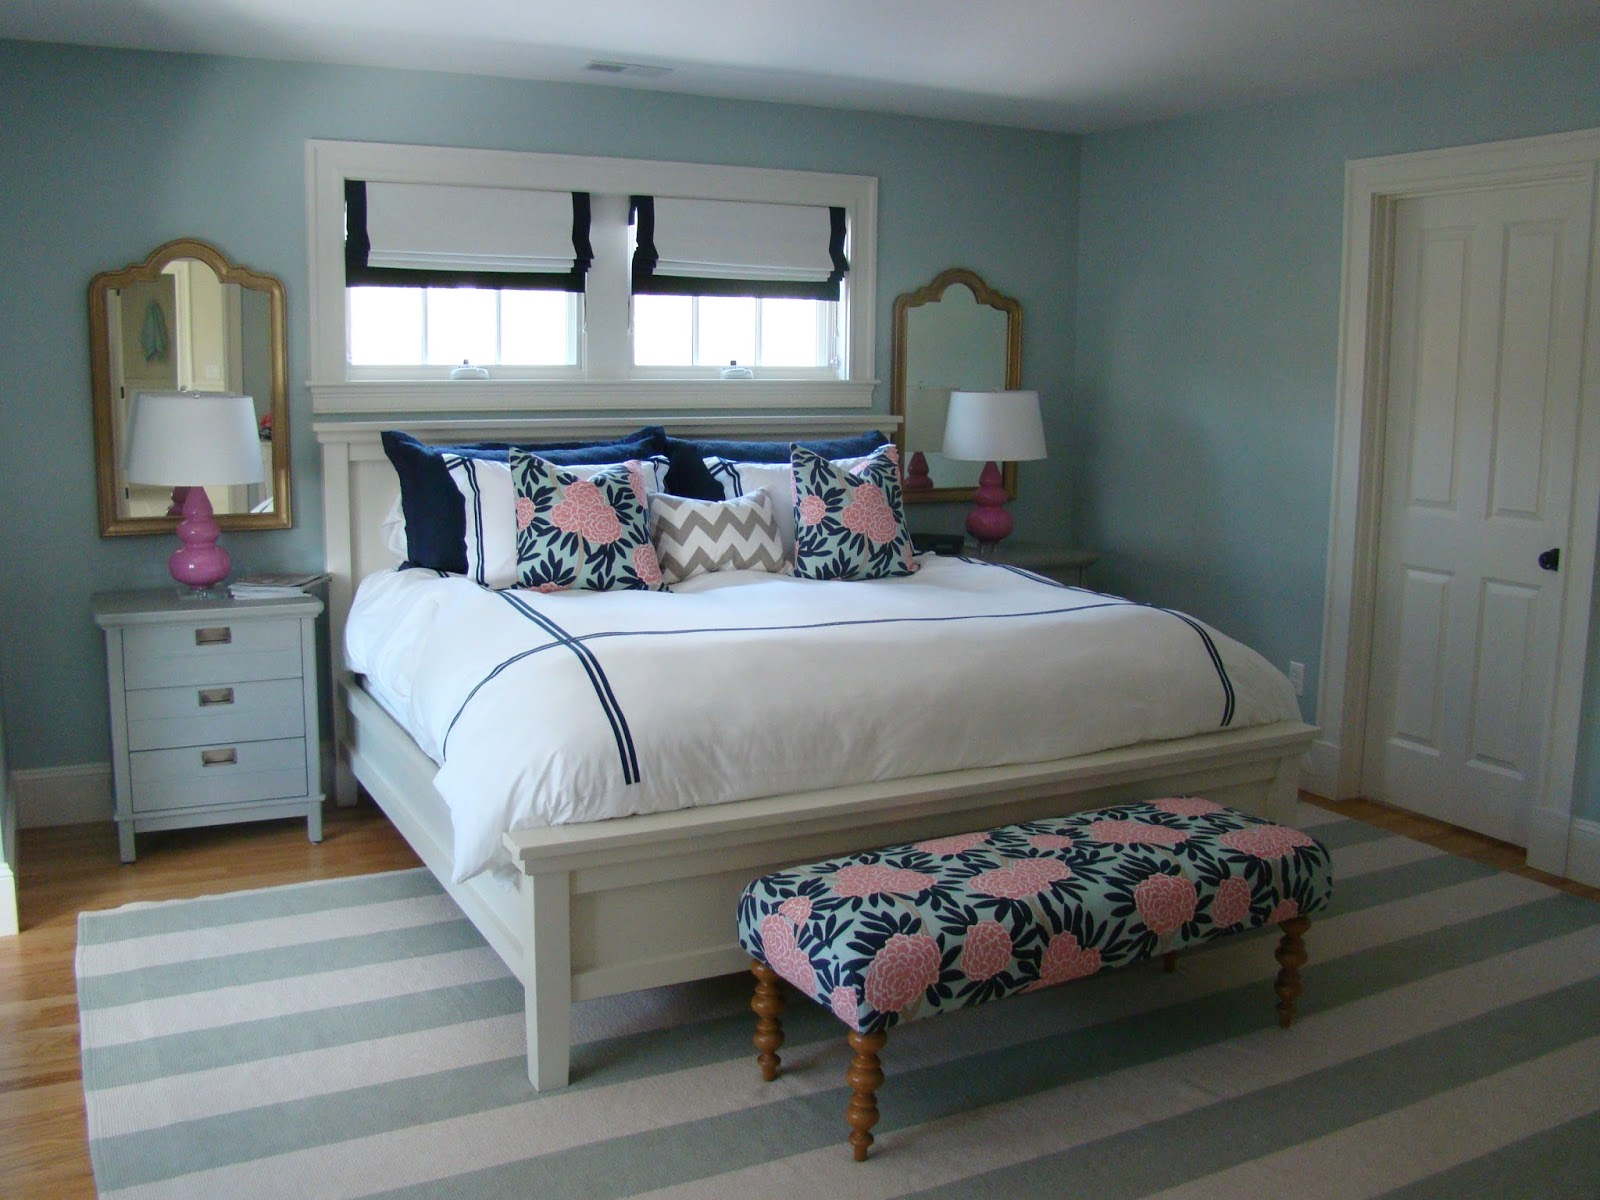 wonderful blue white stripped Dash And Albert Rugs on wooden floor which matched blue wall plus white bed for bedroom decor ideas